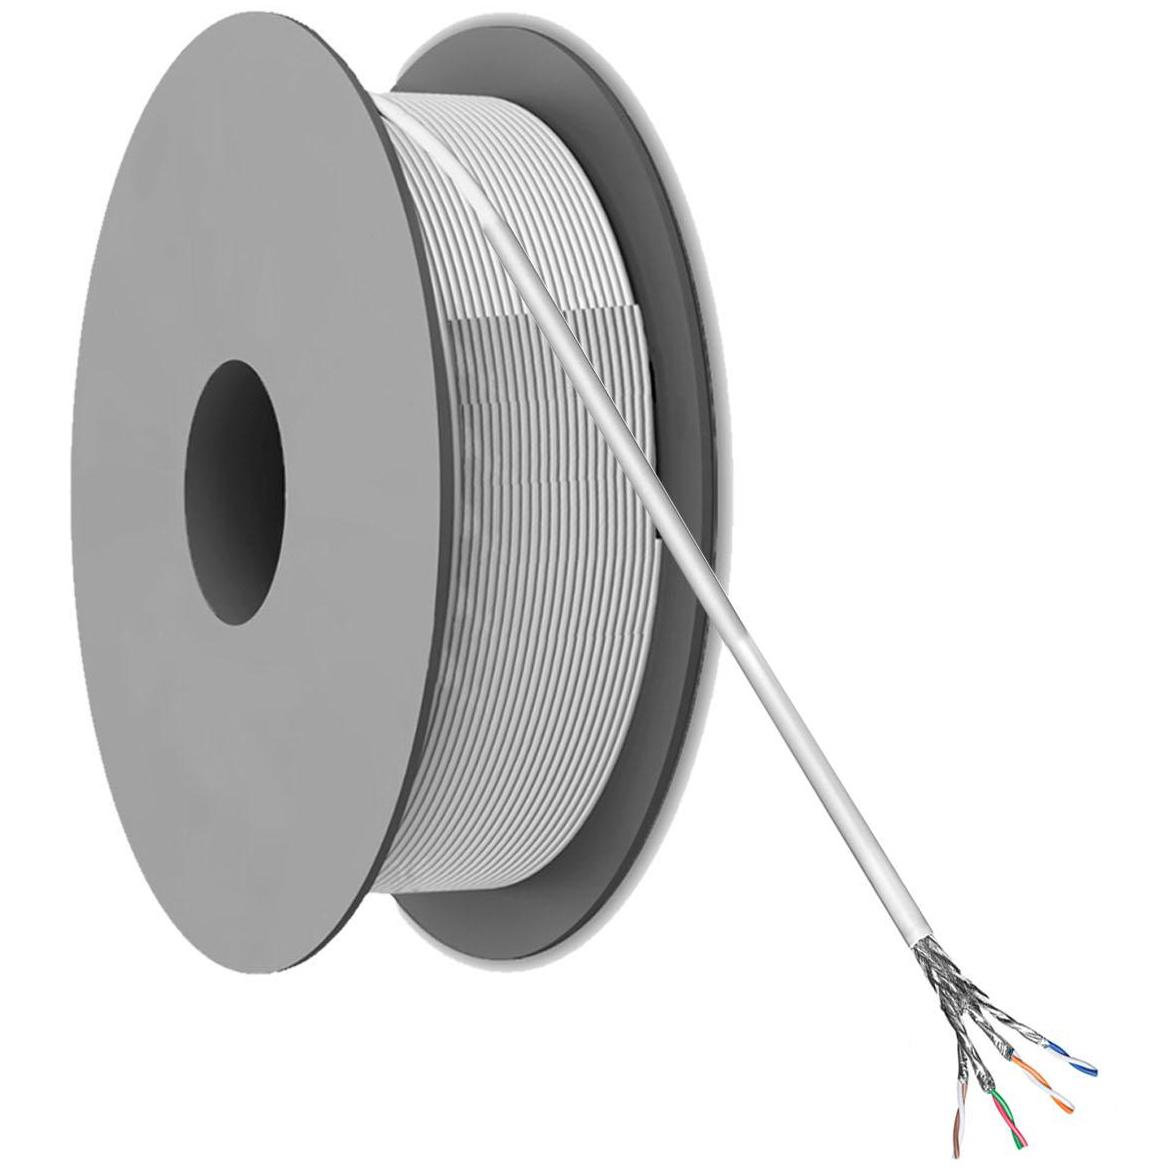 Cat 6a S/FTP netwerkkabel per rol